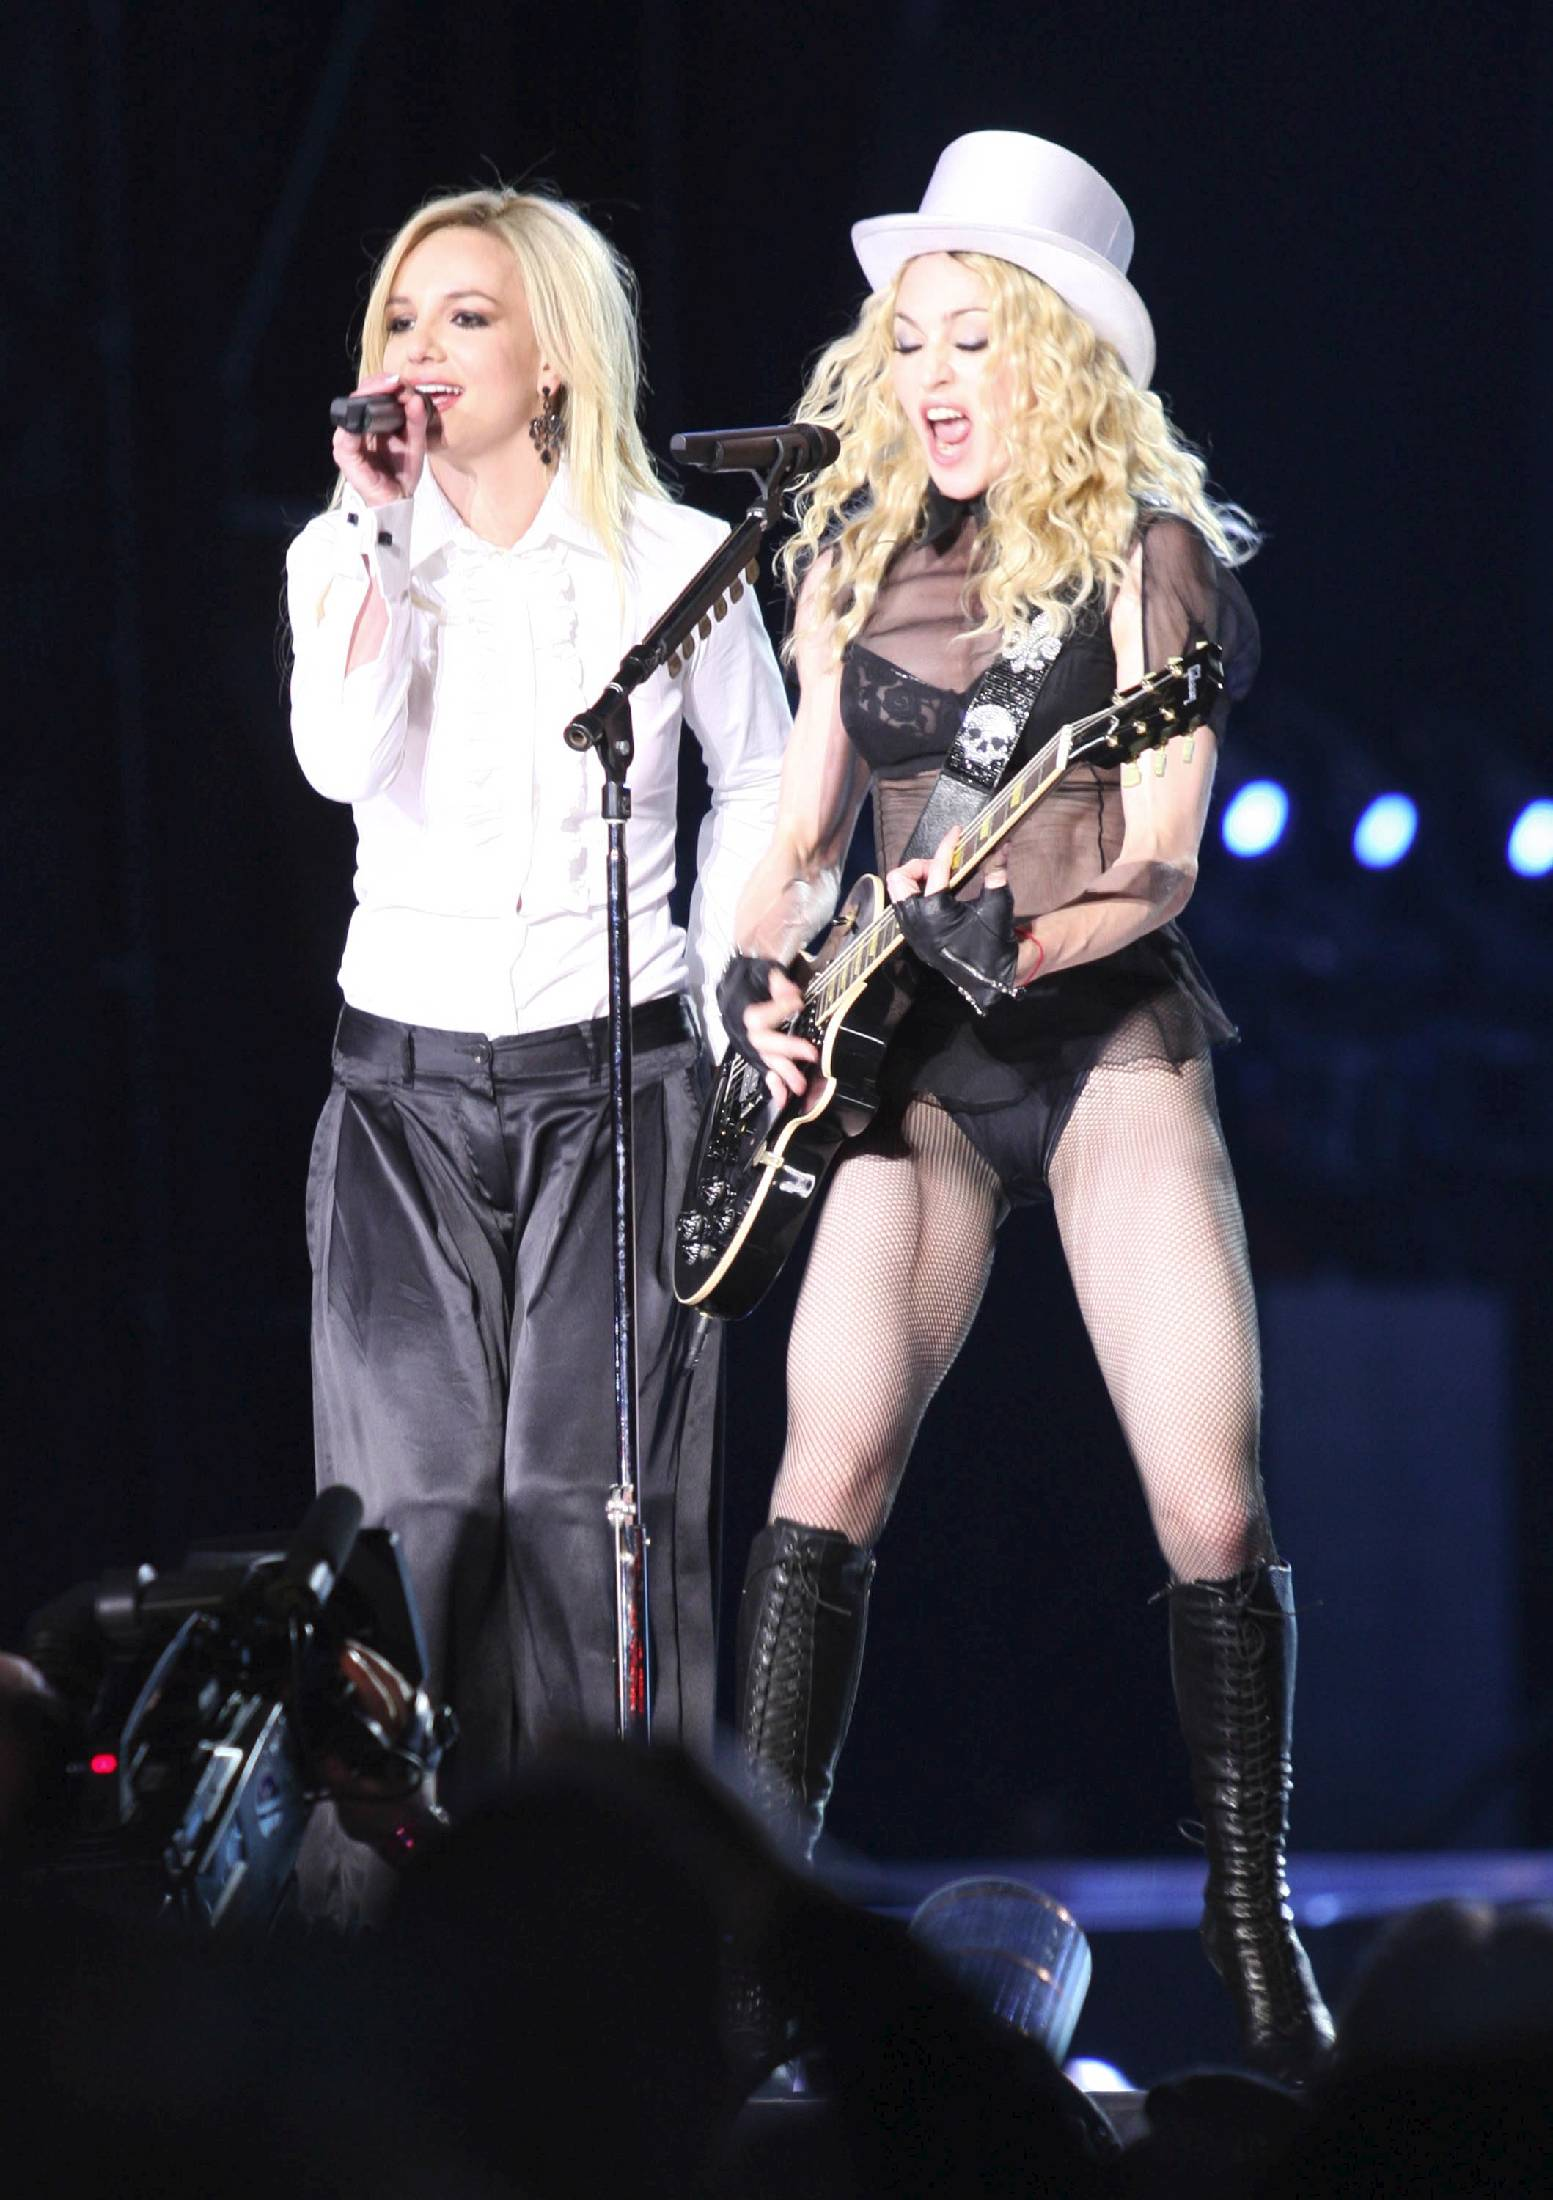 79656_Celebutopia-Madonna_and_Britney_Spears_perform_together_during_Madonna55s_Sticky_and_Sweet_tour_in_Los_Angeles-09_122_640lo.jpg